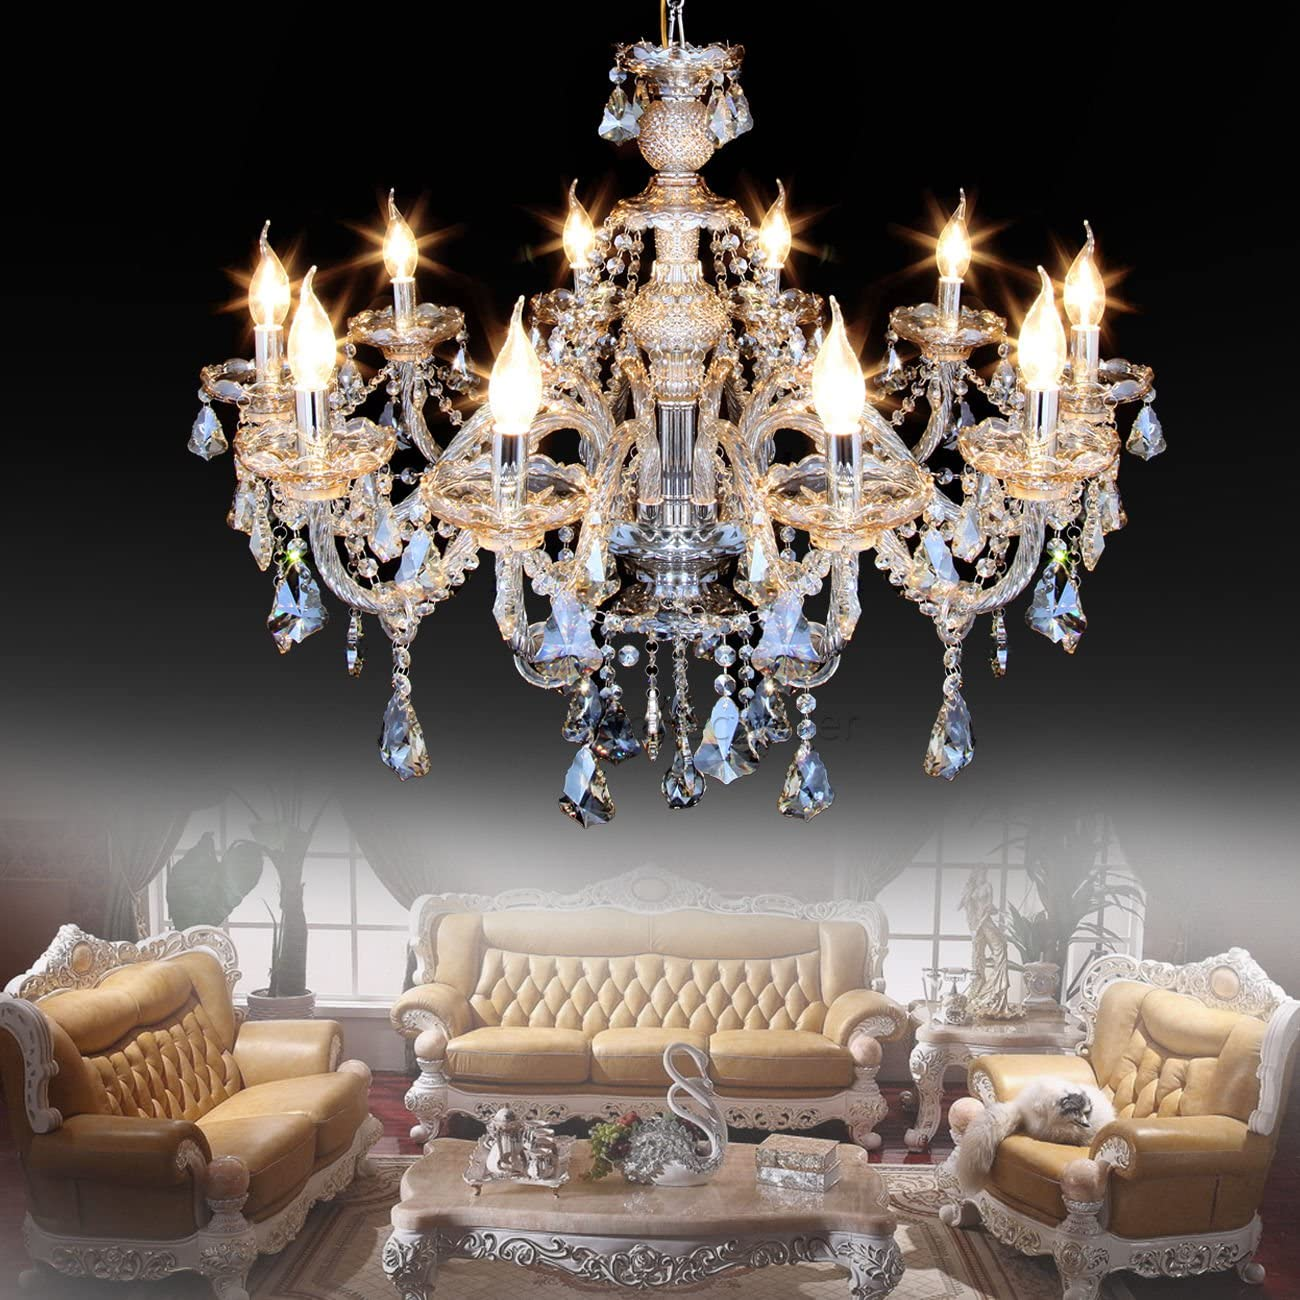 Ridgeyard 25.6 x 35.4 Inch Modern Luxurious 10 Lights K9 Crystal Chandelier  Candle Pendant Lamp Living Room Ceiling Lighting for Dining Bedroom ...